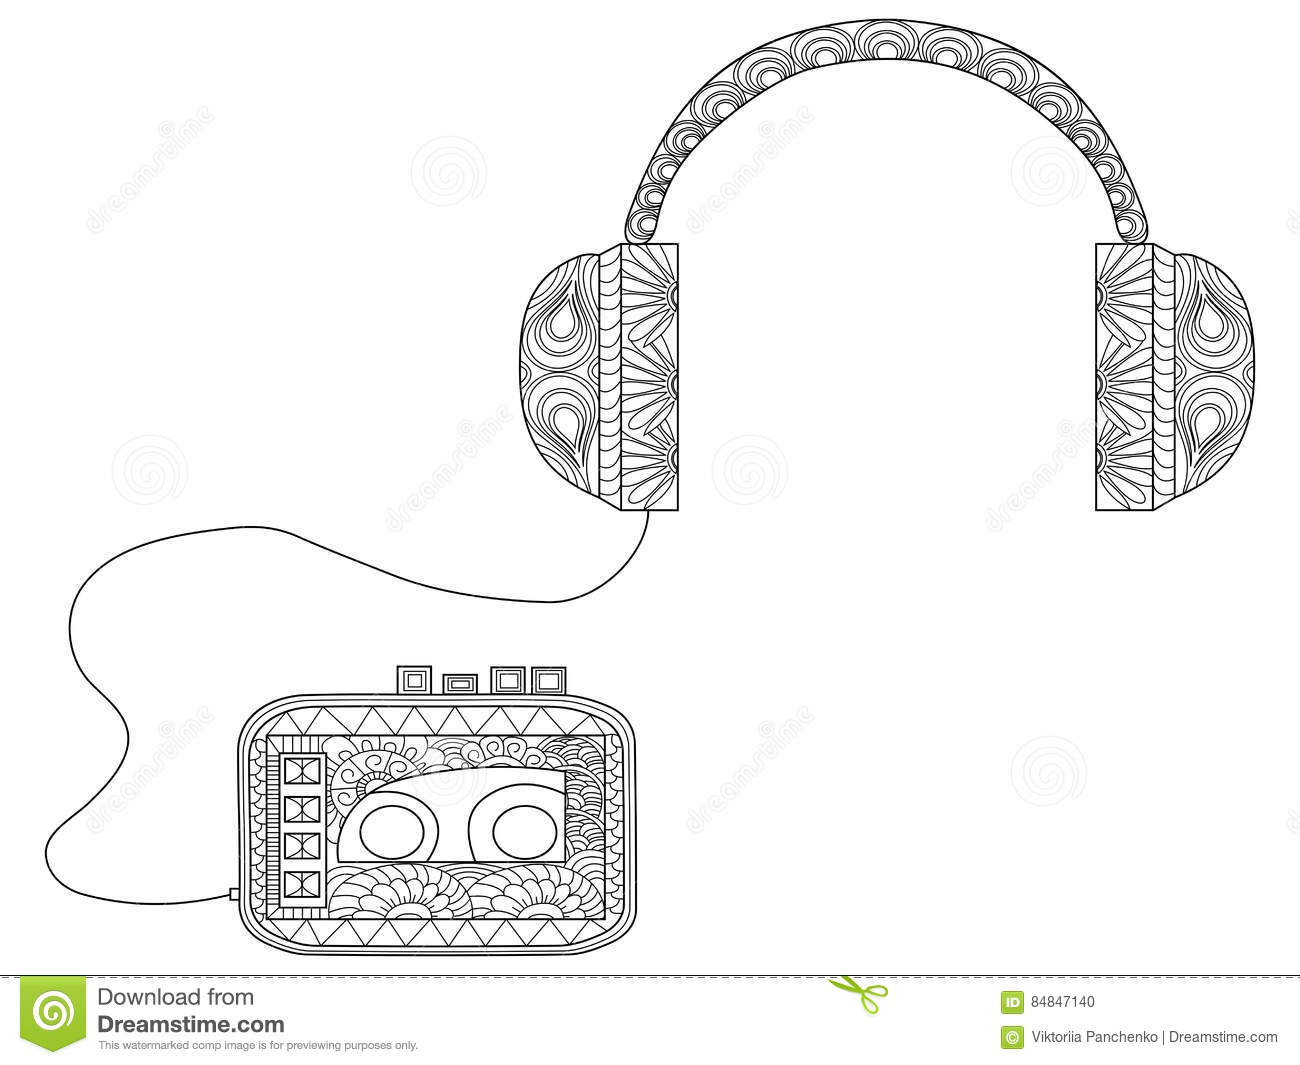 Player With Headphones Coloring Vector For Adults Stock